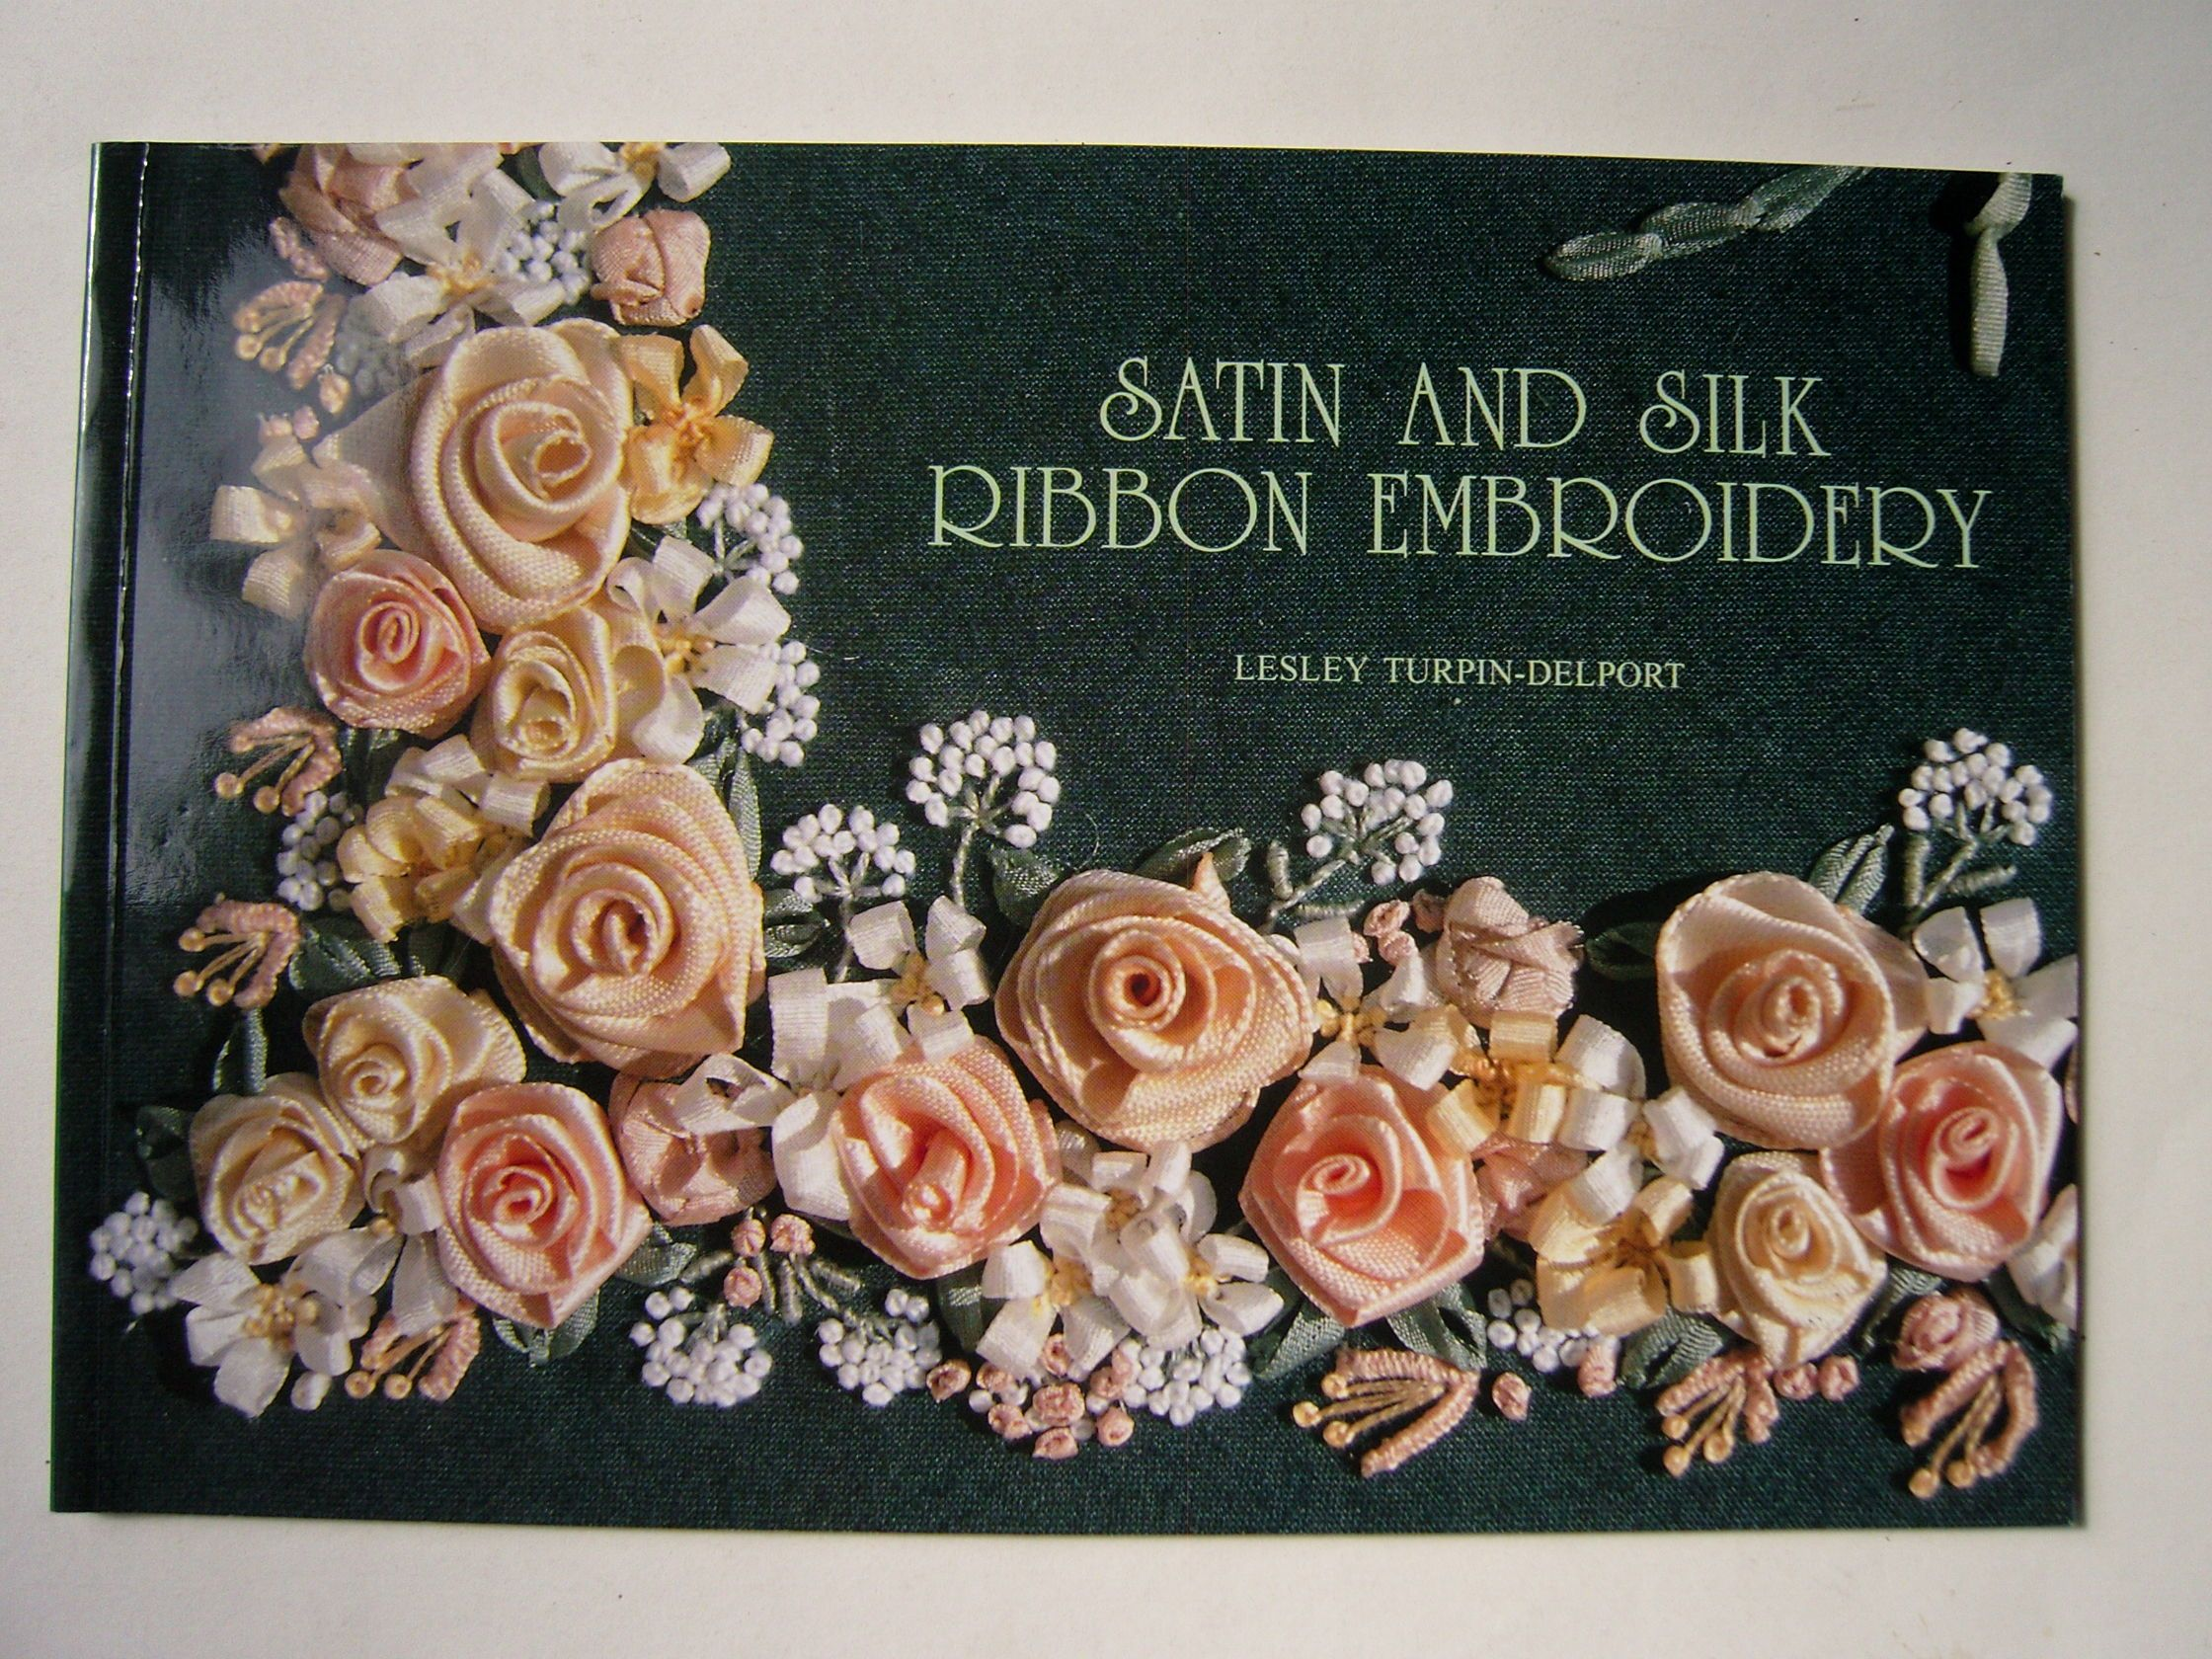 Turpin-Delport, Lesley - Satin and Silk Ribbon Embroidery